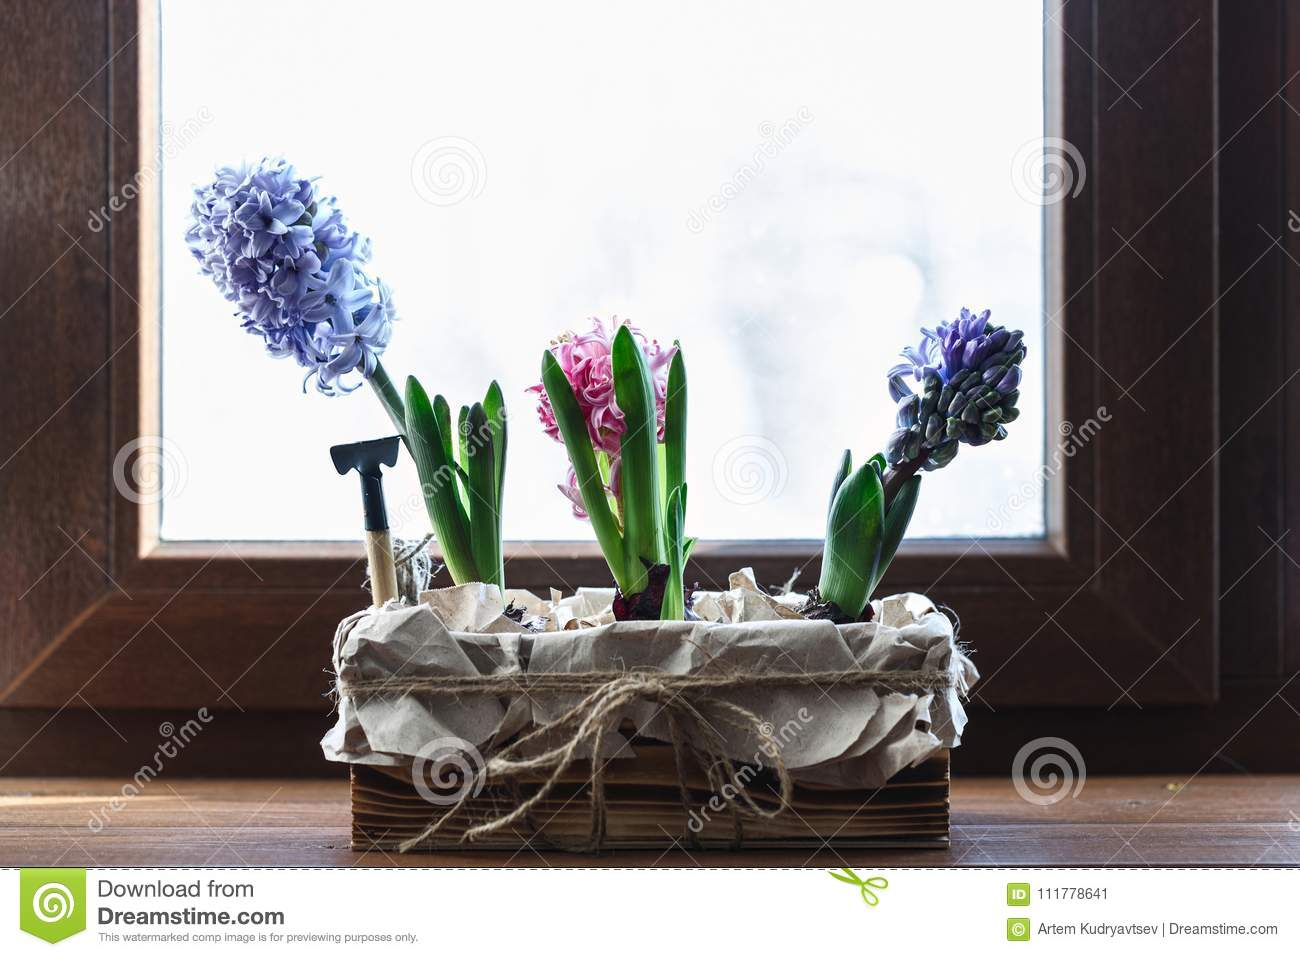 Young colored hyacinths in a box